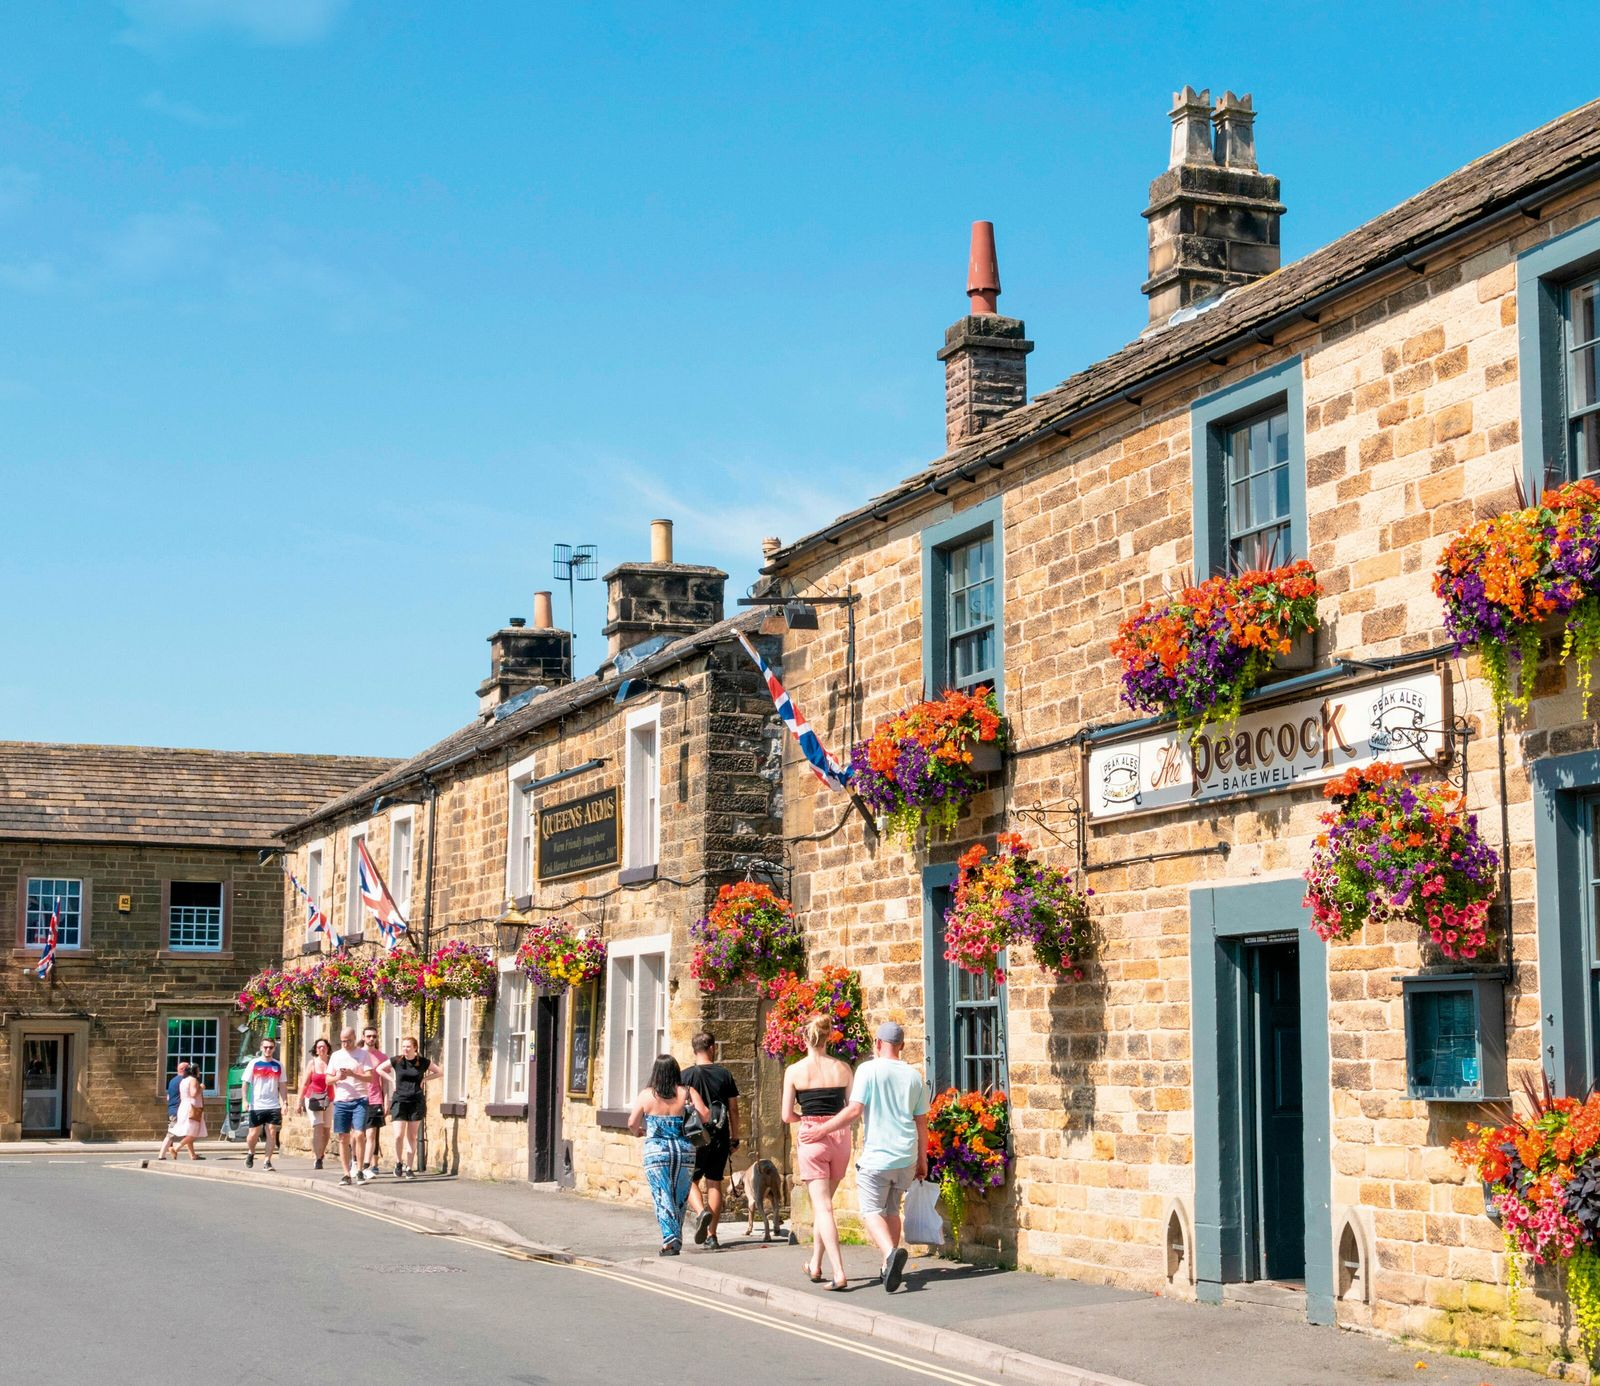 The Peacock Inn in Bakewell town centre. Perhaps best-known for its eponymous pudding, Bakewell makes the ideal jumping-off ...